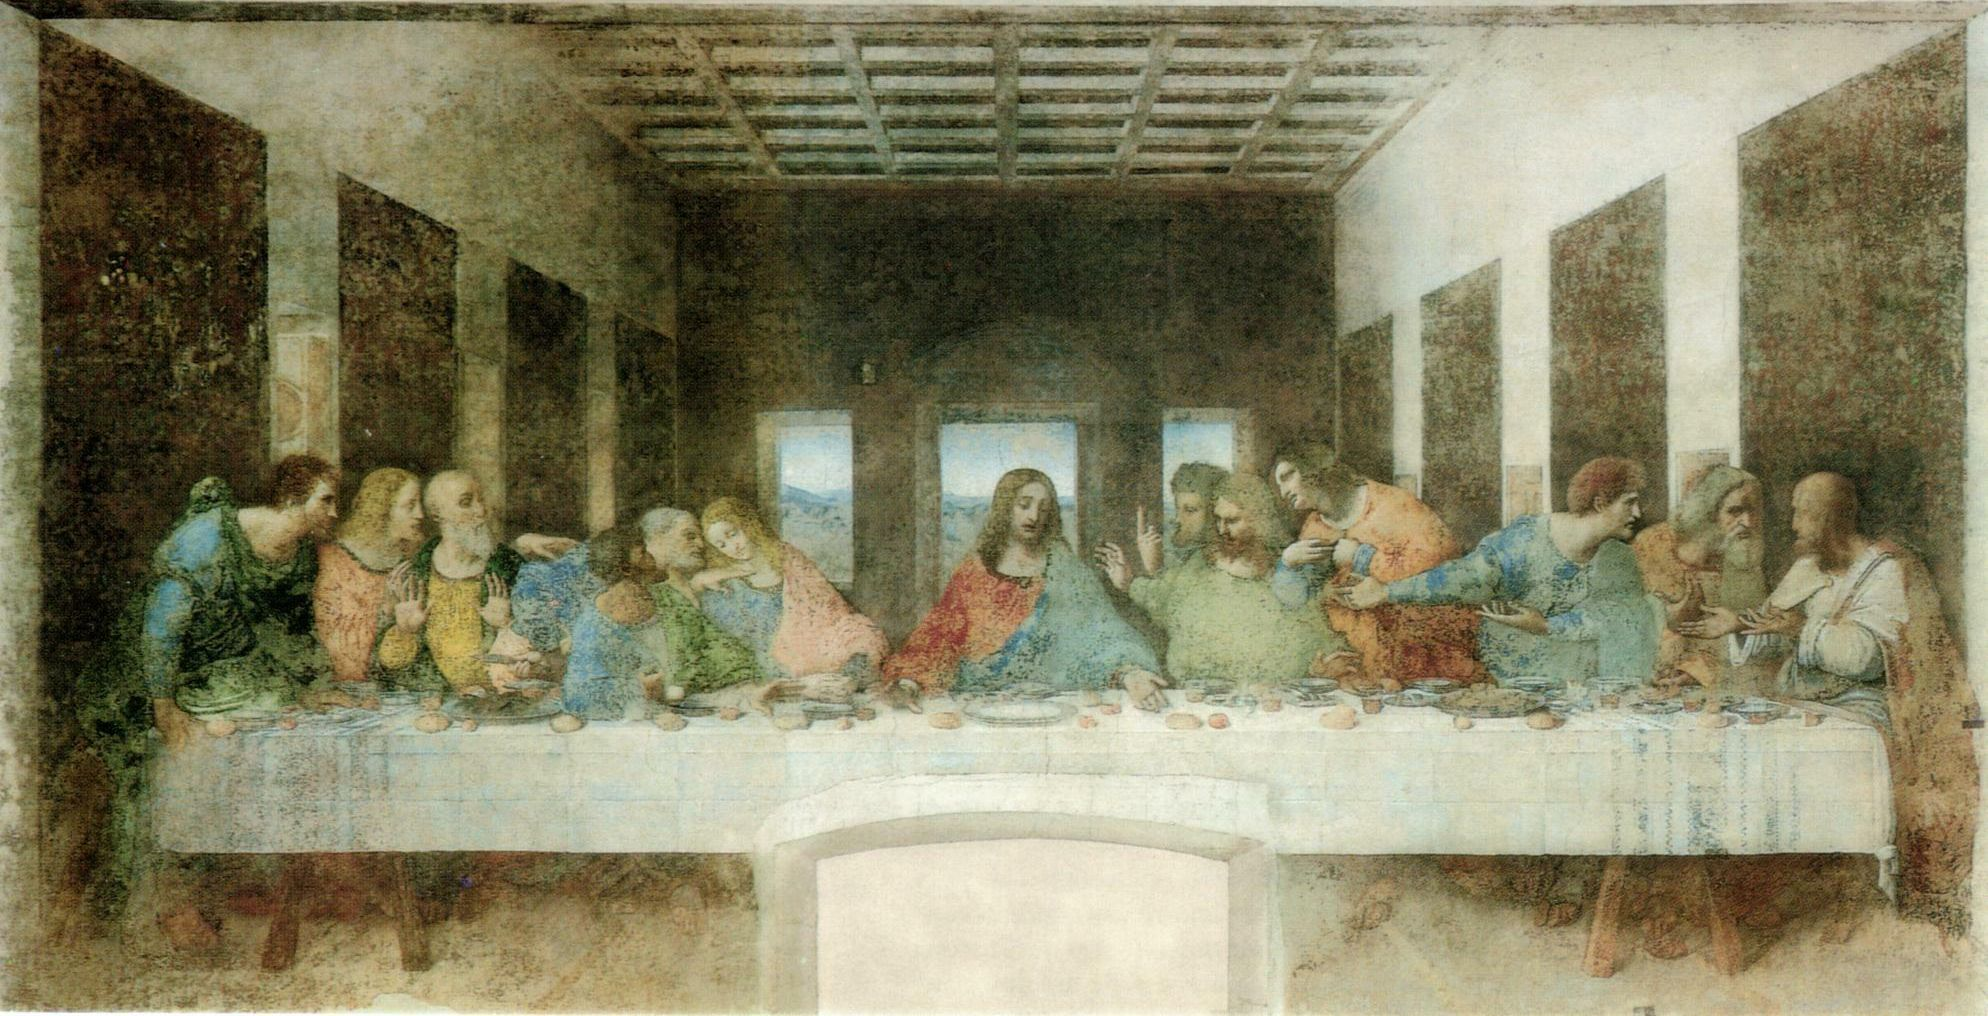 Leonardo da Vinci: The Last Supper, post-restoration version